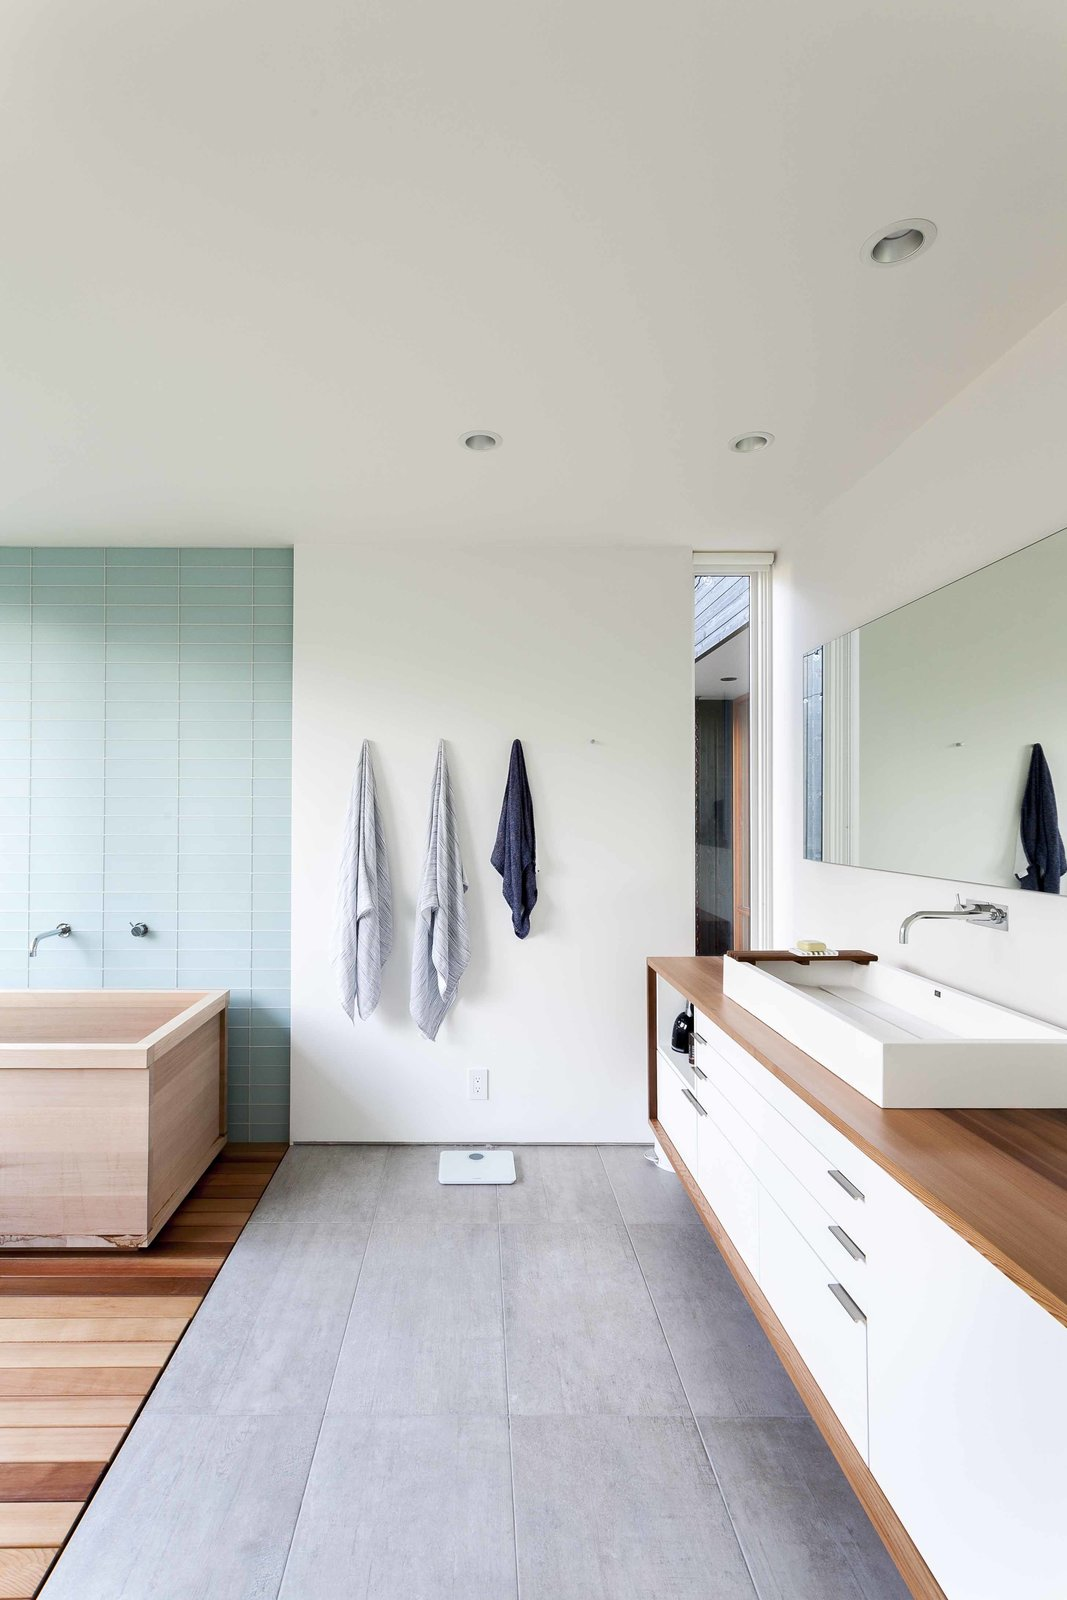 The owners were passionately involved in every aspect of the design, and pushed the team to make choices they normally might not have, including using Western red cedar for the master bathroom countertop. The spa-like space features a soaking tub, tile from Statements Urban, an MTI sink, a custom mirror, and a Vola faucet. Tagged: Bath Room, Vessel Sink, and Concrete Floor. Bath & Spa Intrigue - Photo 6 of 22